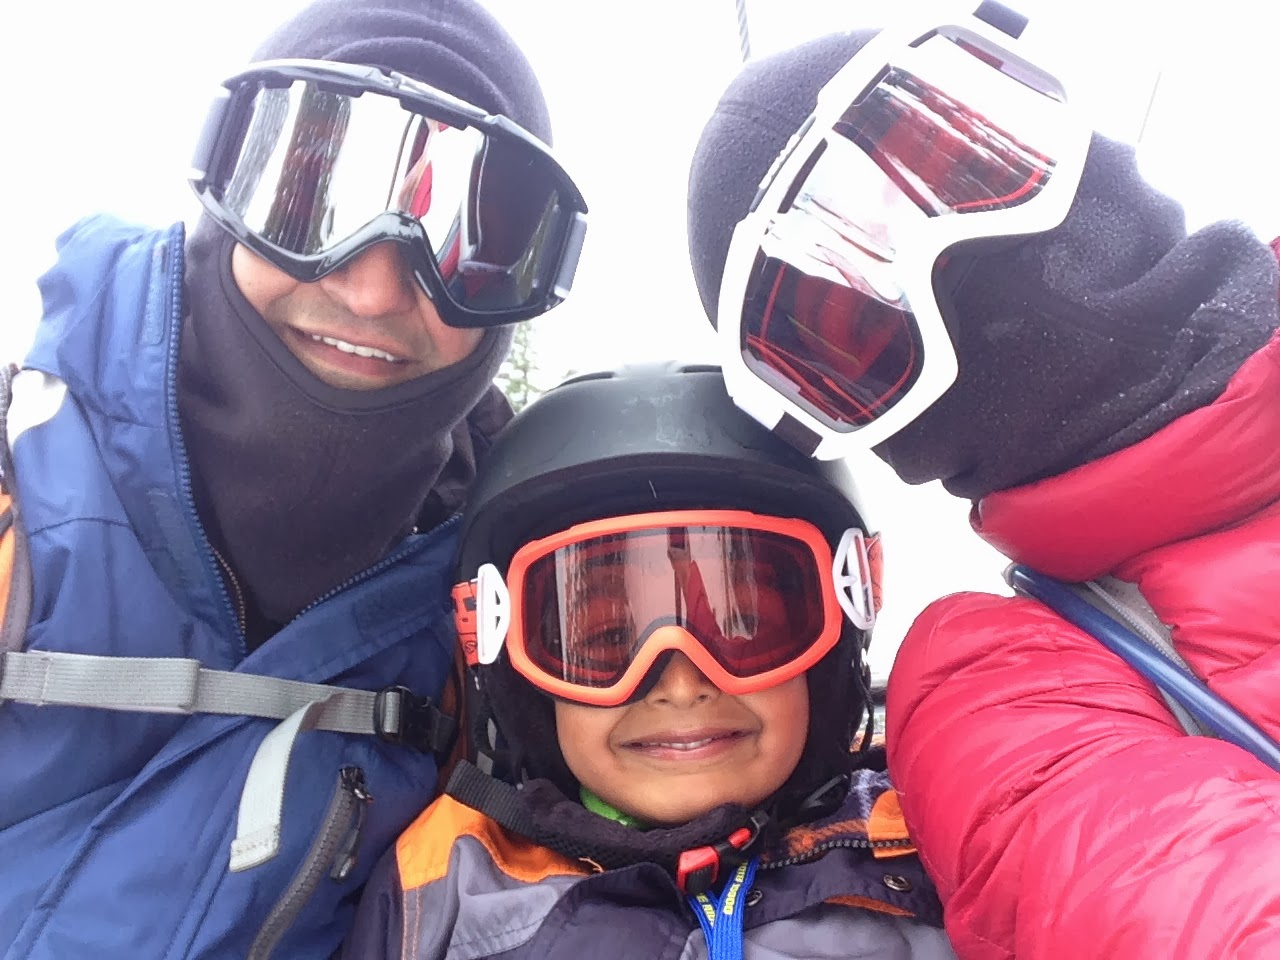 Our family skiing in March 2014